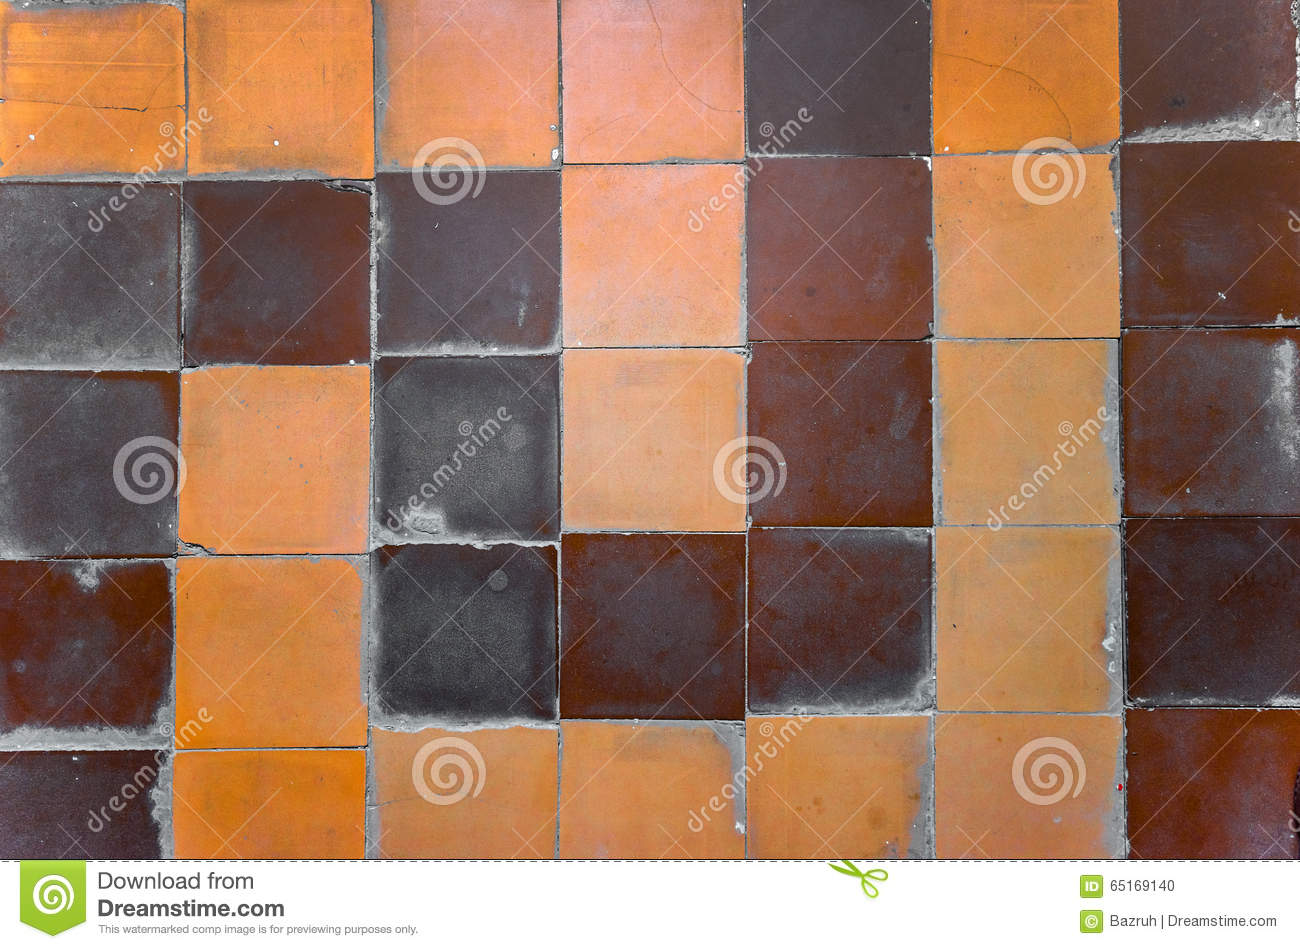 Old Ceramic Tile On Floor Stock Photo Image Of Antique 65169140